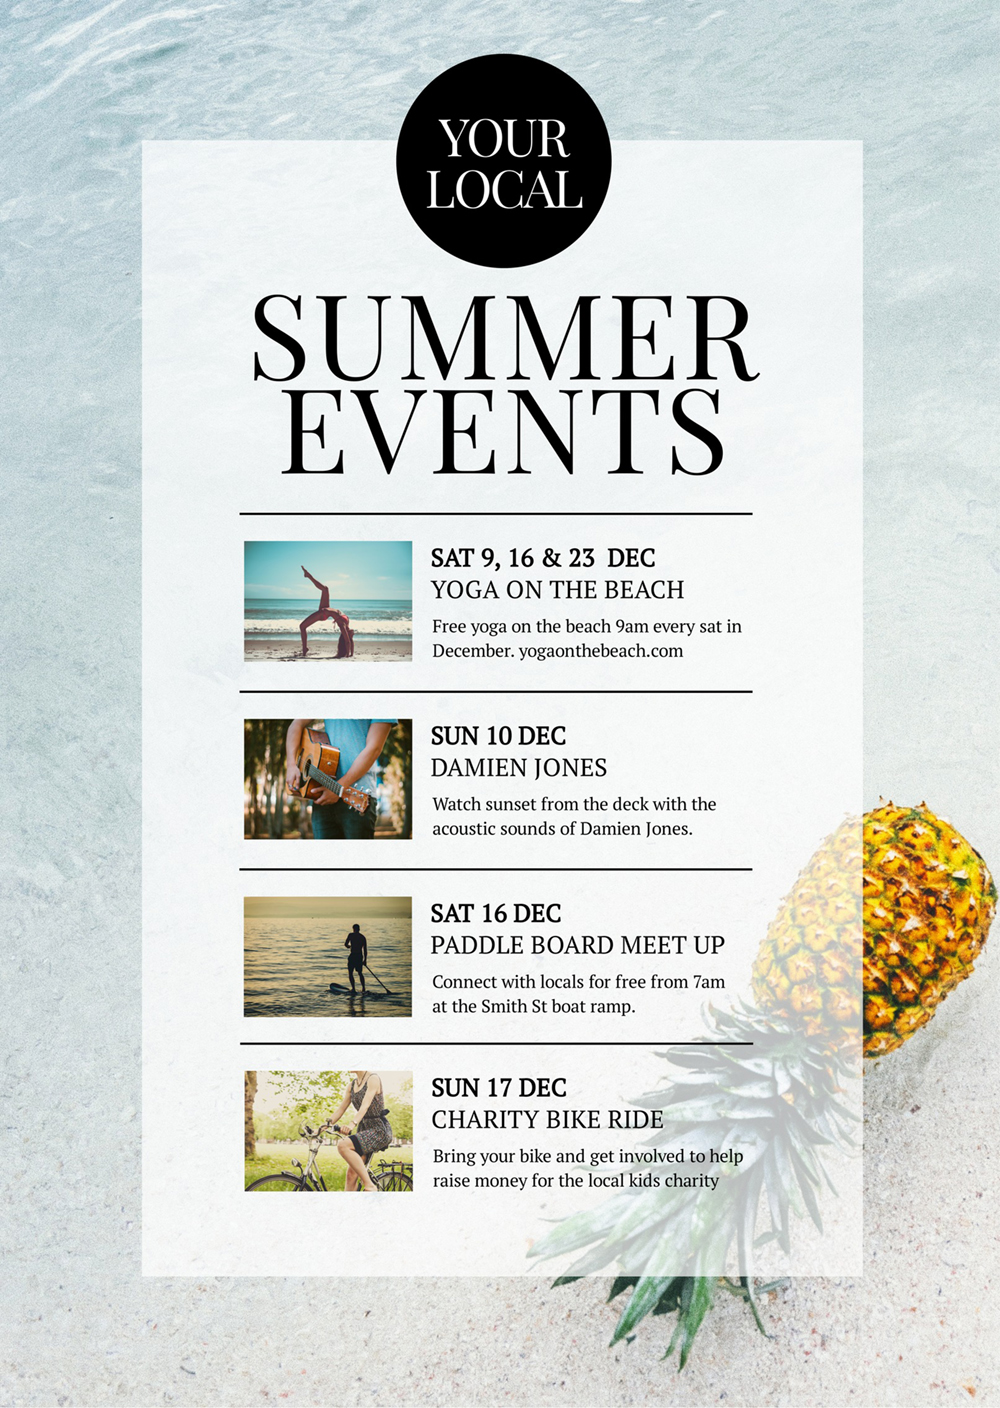 Local Summer Events Guide - How to Get More Event Bookings at your Venue in 2018 - 21 Easy Tips